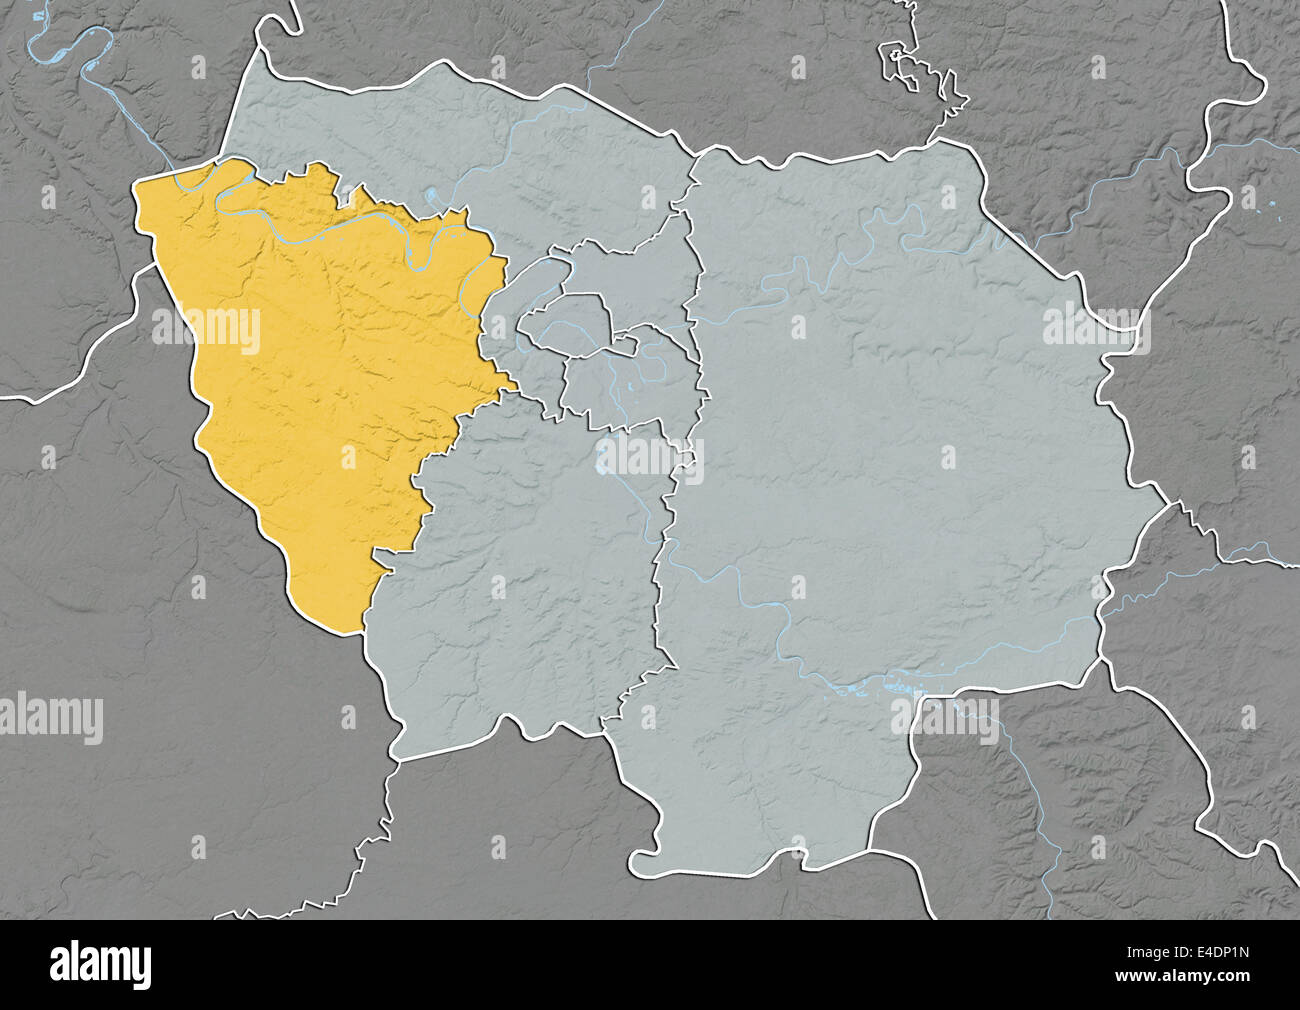 Map Of Yvelines France.Departement Of Yvelines France Relief Map Stock Photo 71602769